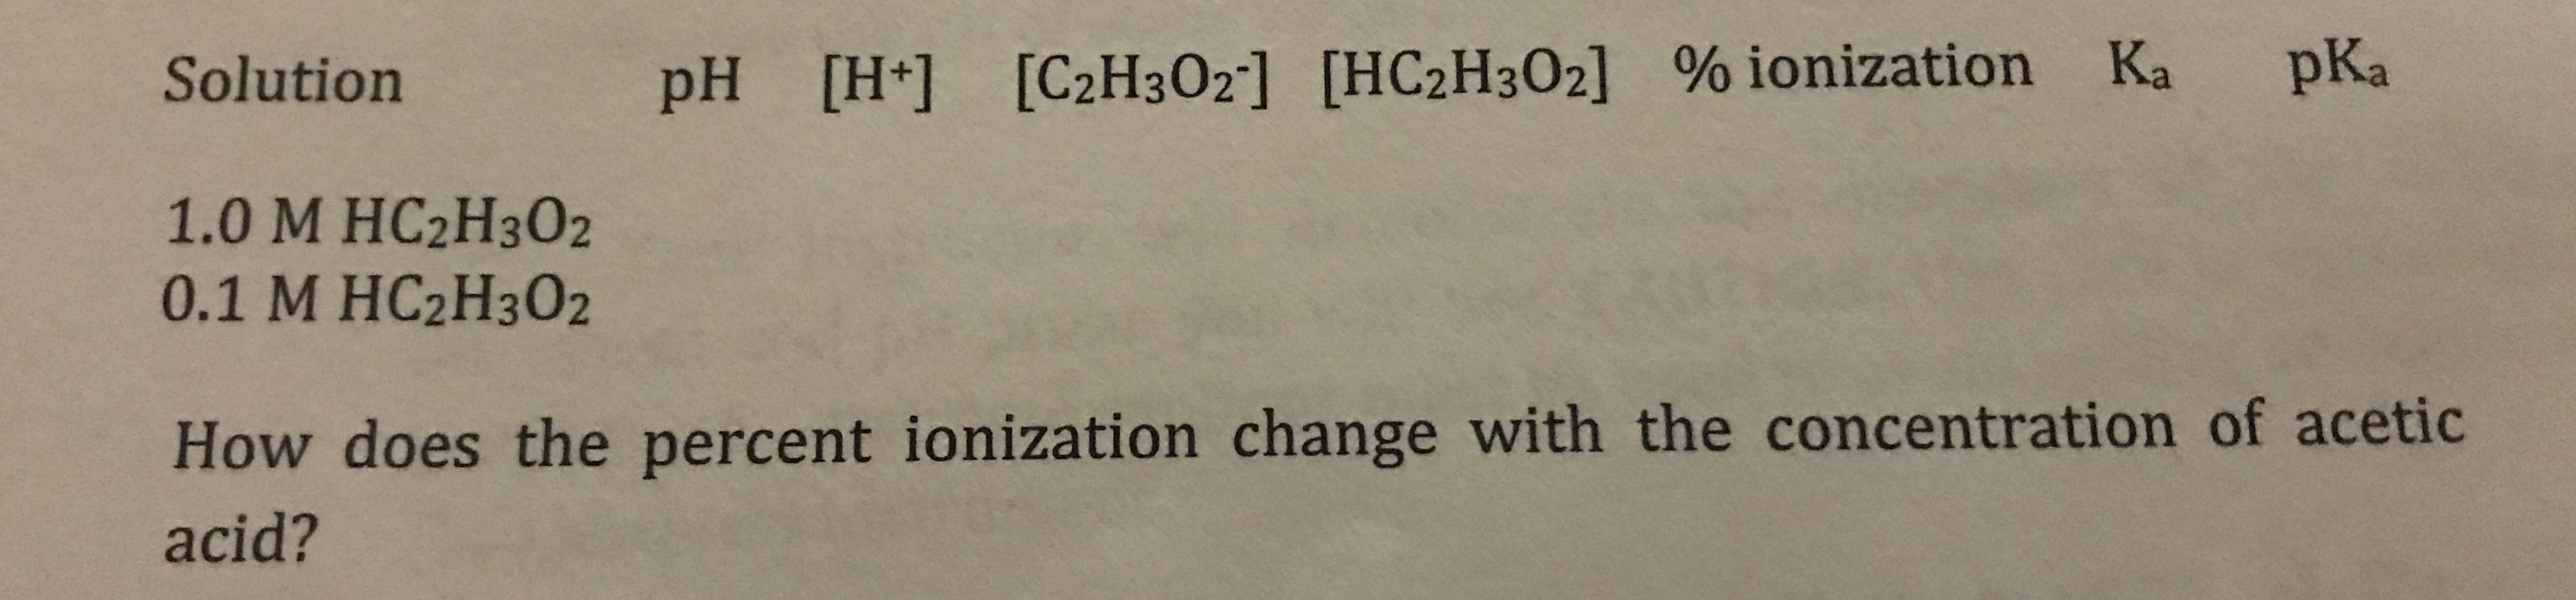 pKa Solution pH [H+] [C2H3O2] [HC2H3O2] % ionization Ka 1.0 М НC2Н302 0.1 M HC2H302 How does the percent ionization change with the concentration of acetic acid?